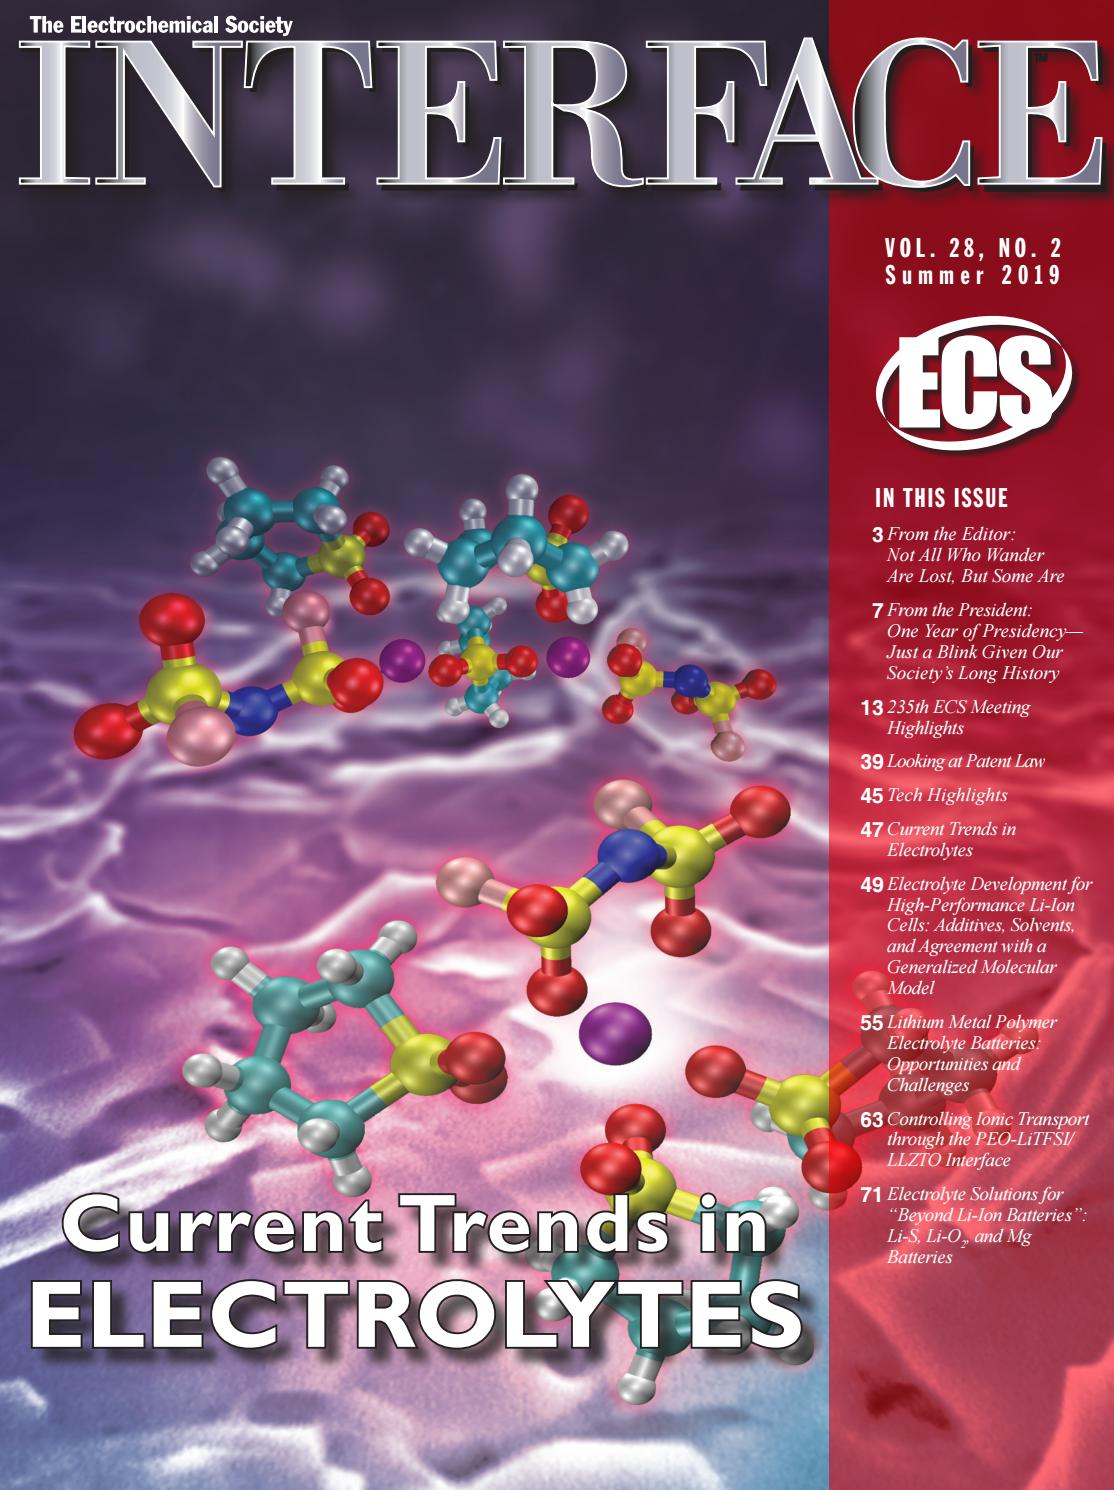 Interface Vol 28 No 2 Summer By The Electrochemical Society Issuu